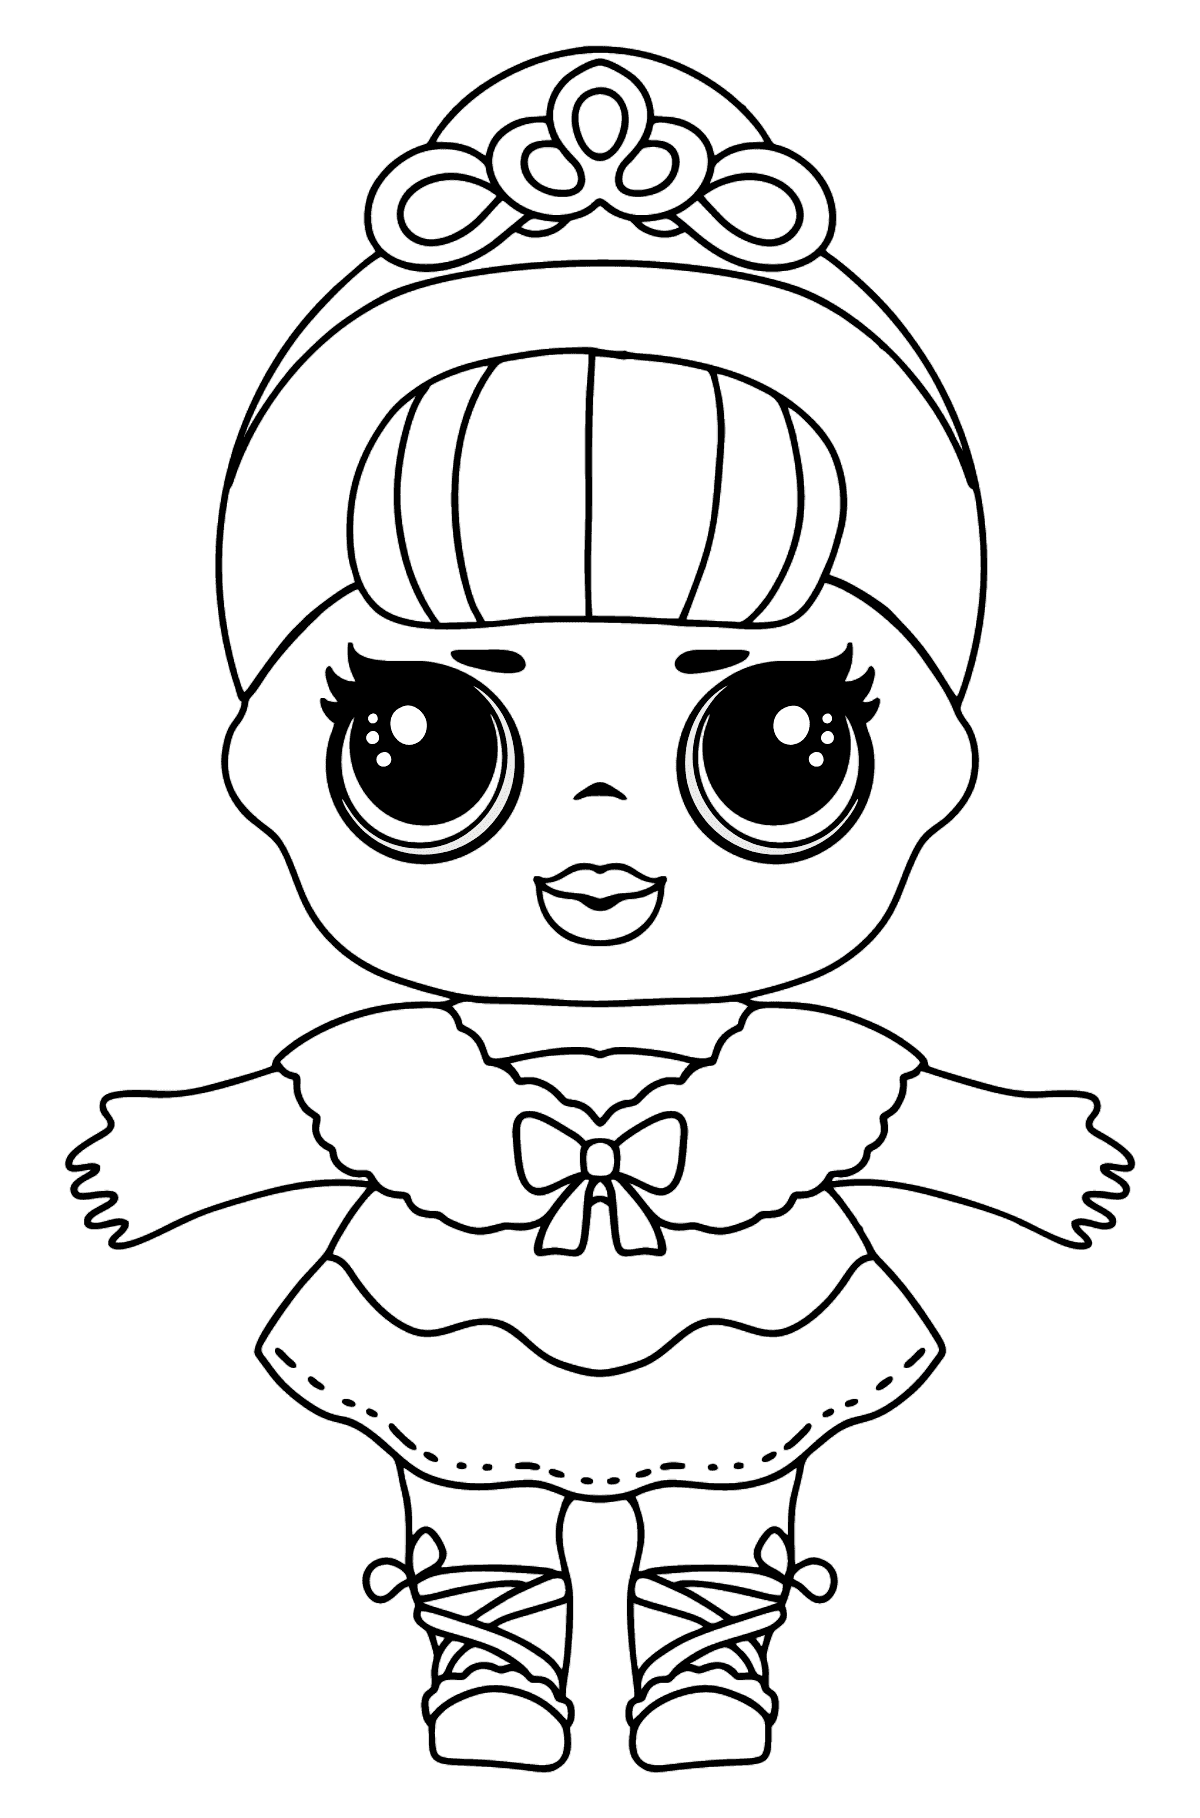 L.O.L. Surprise Doll Crystal Queen - Coloring Pages for Kids